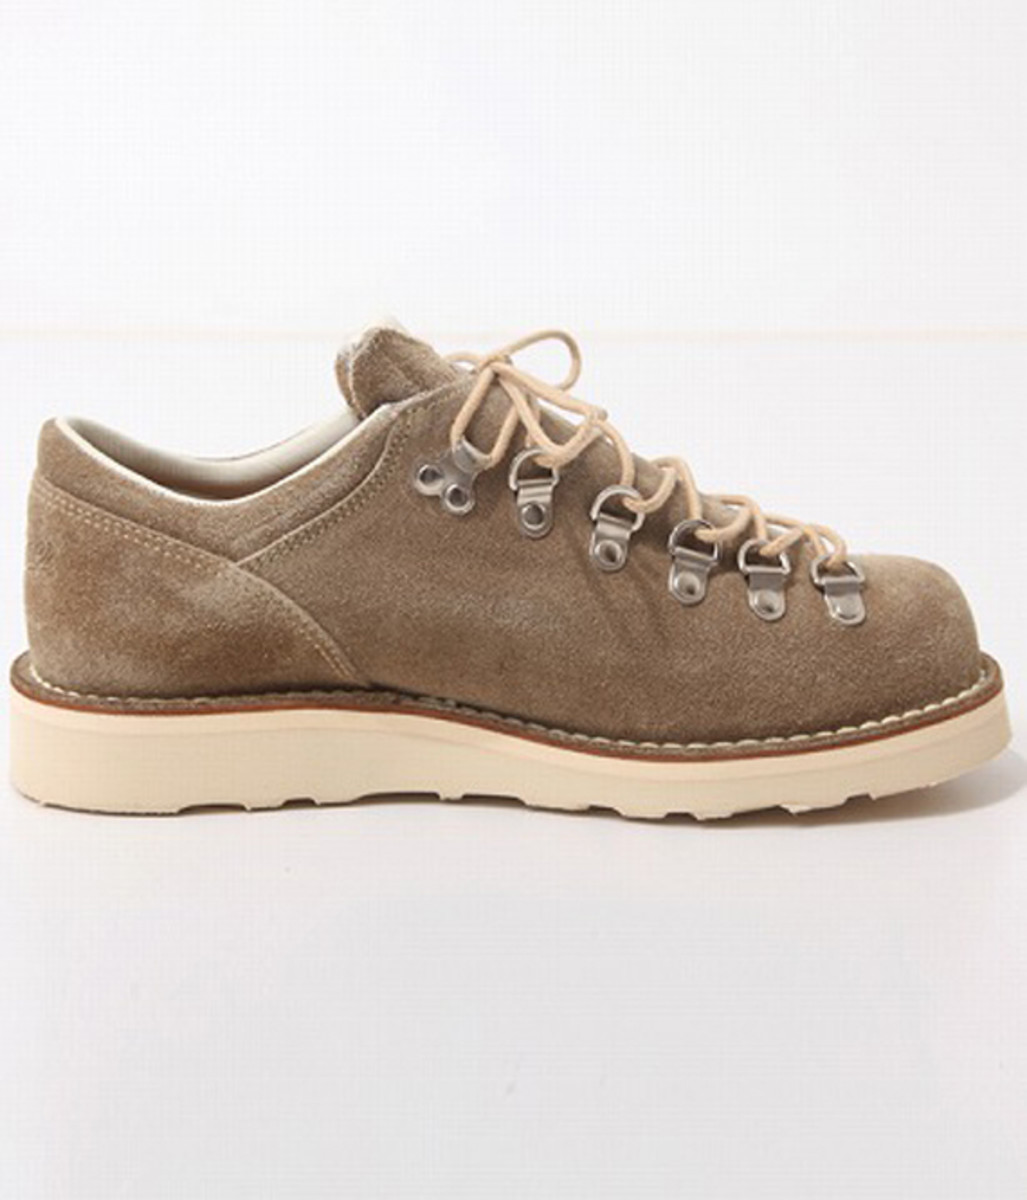 Mt. Ridge Low Beige 6